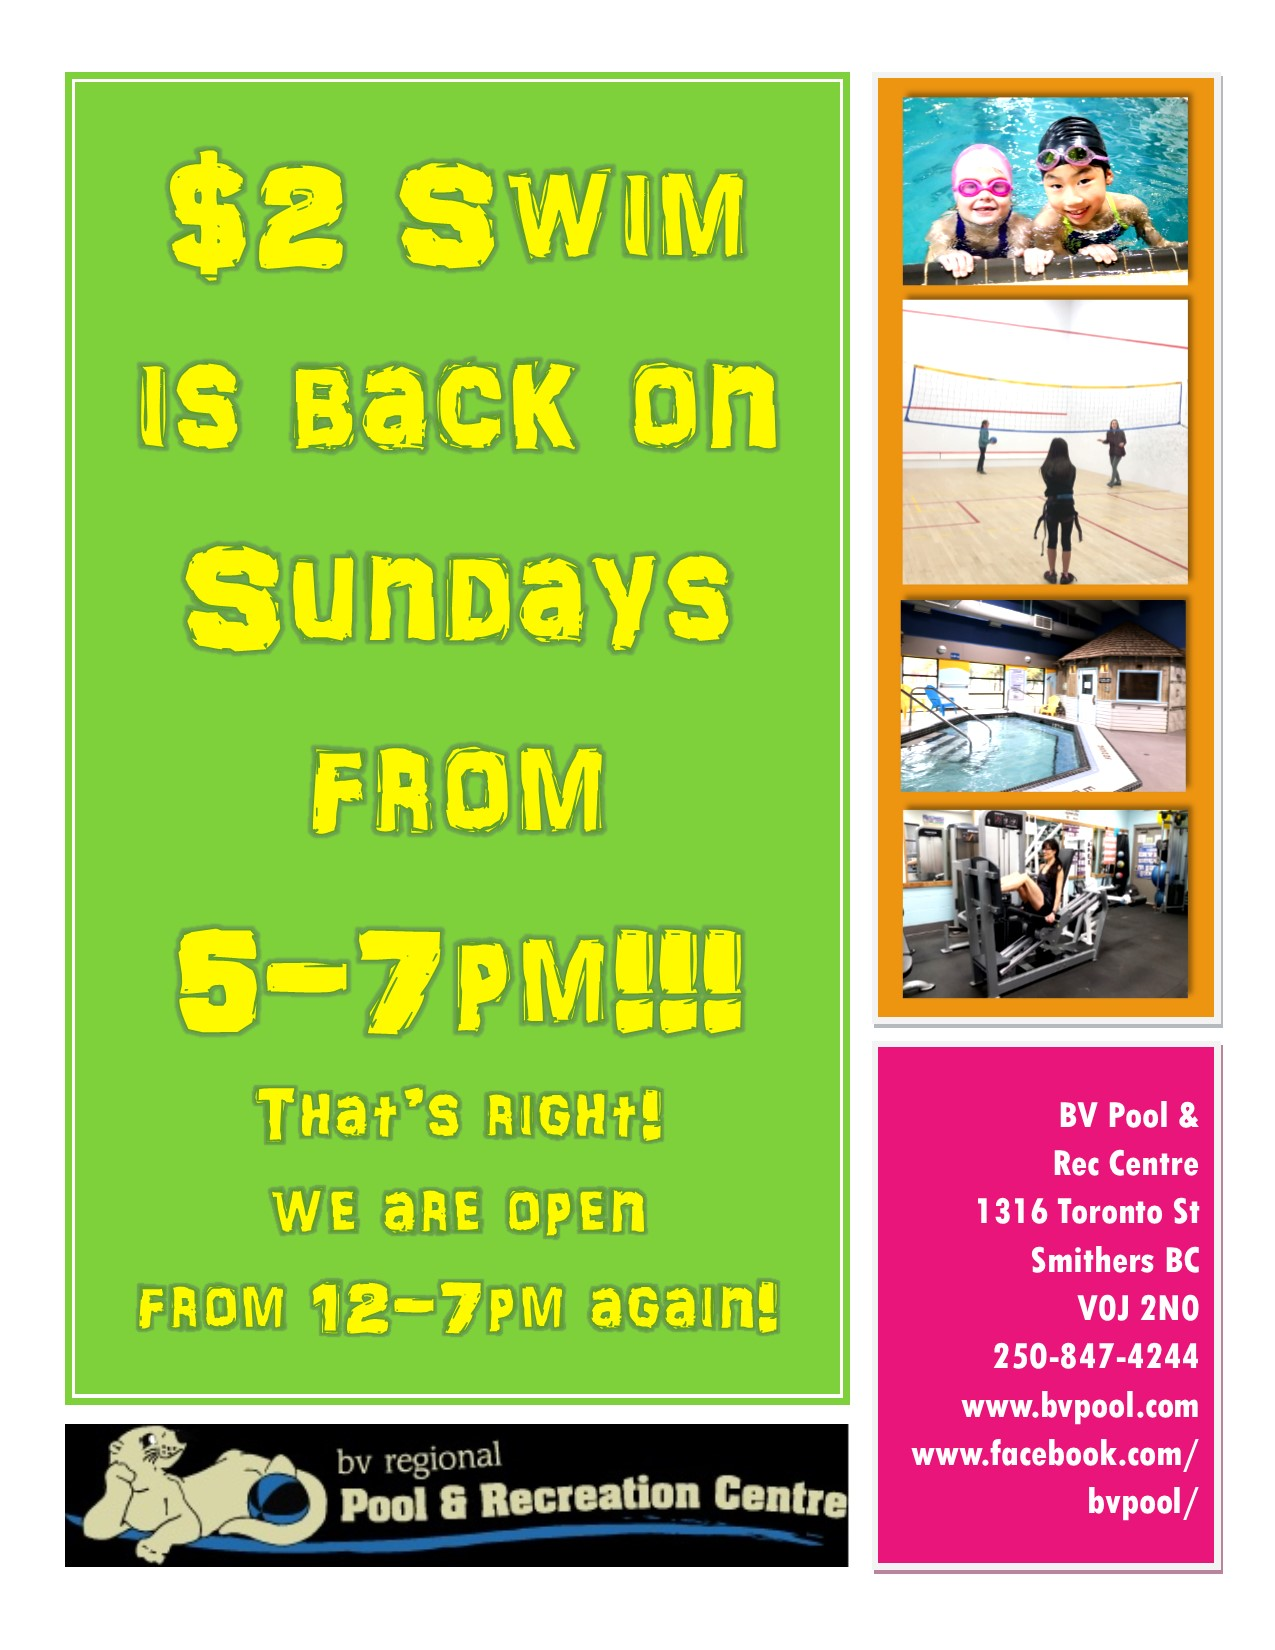 Toonie Swim is back on Sundays